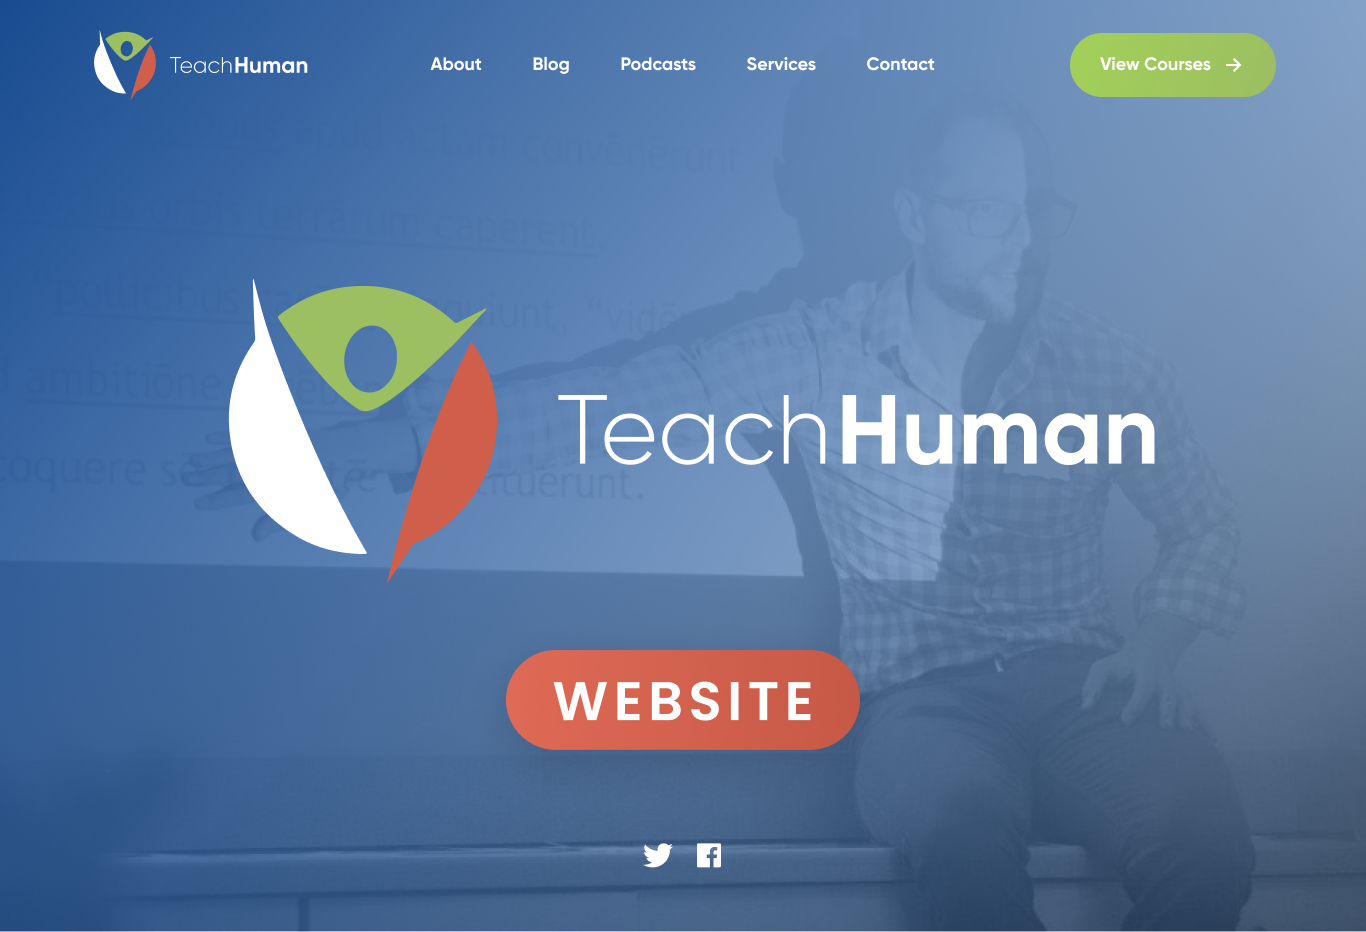 TeachHuman Website